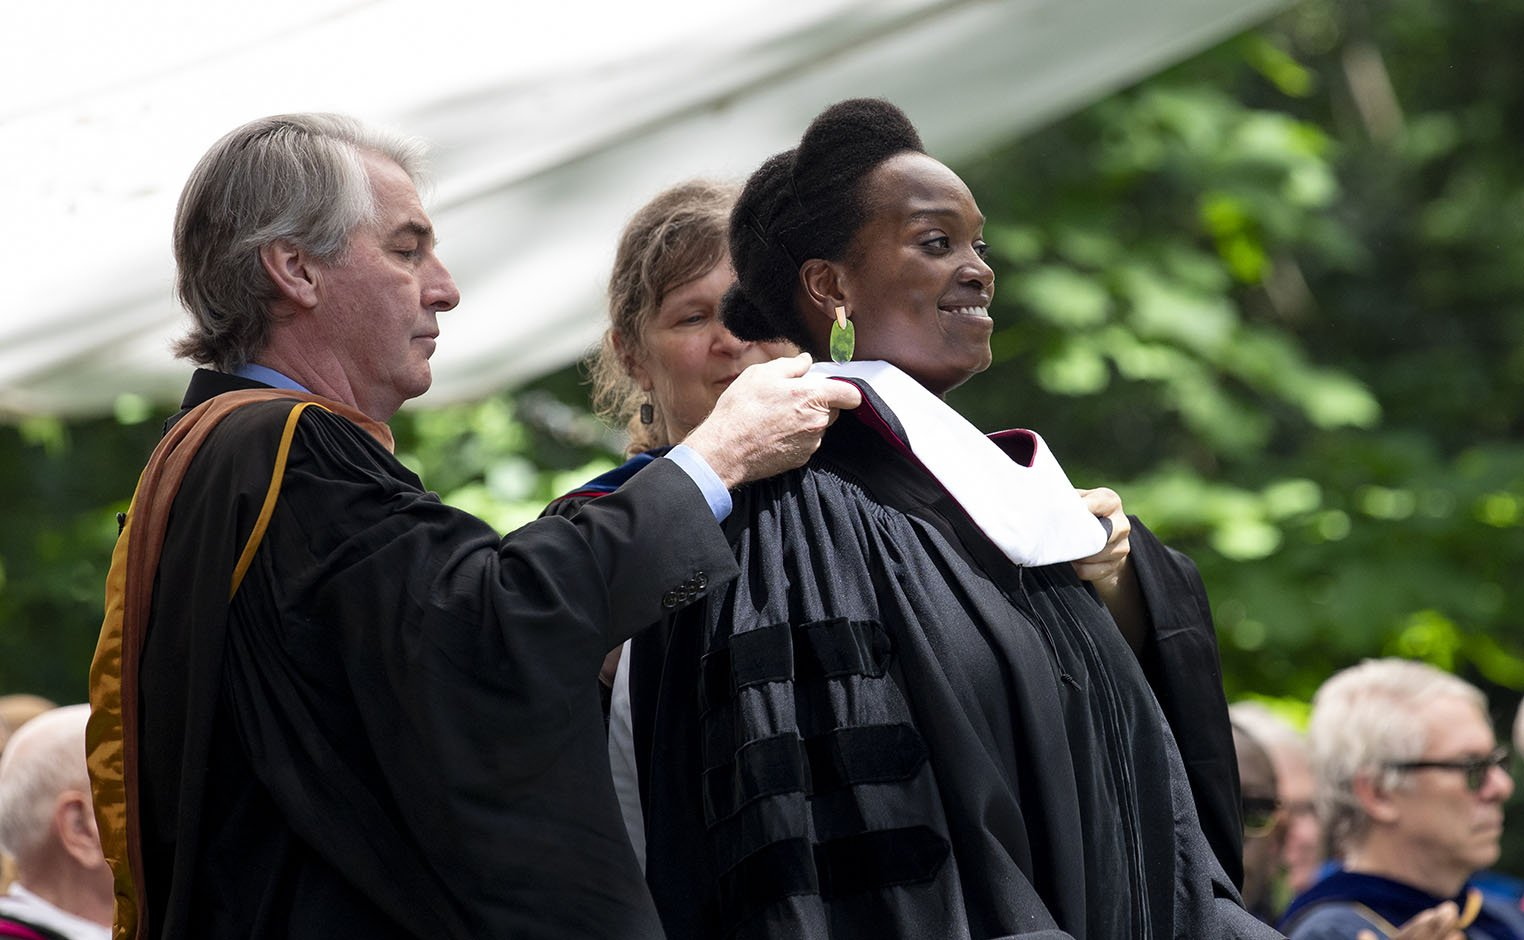 Honorary Degree recipient being honored at commencement